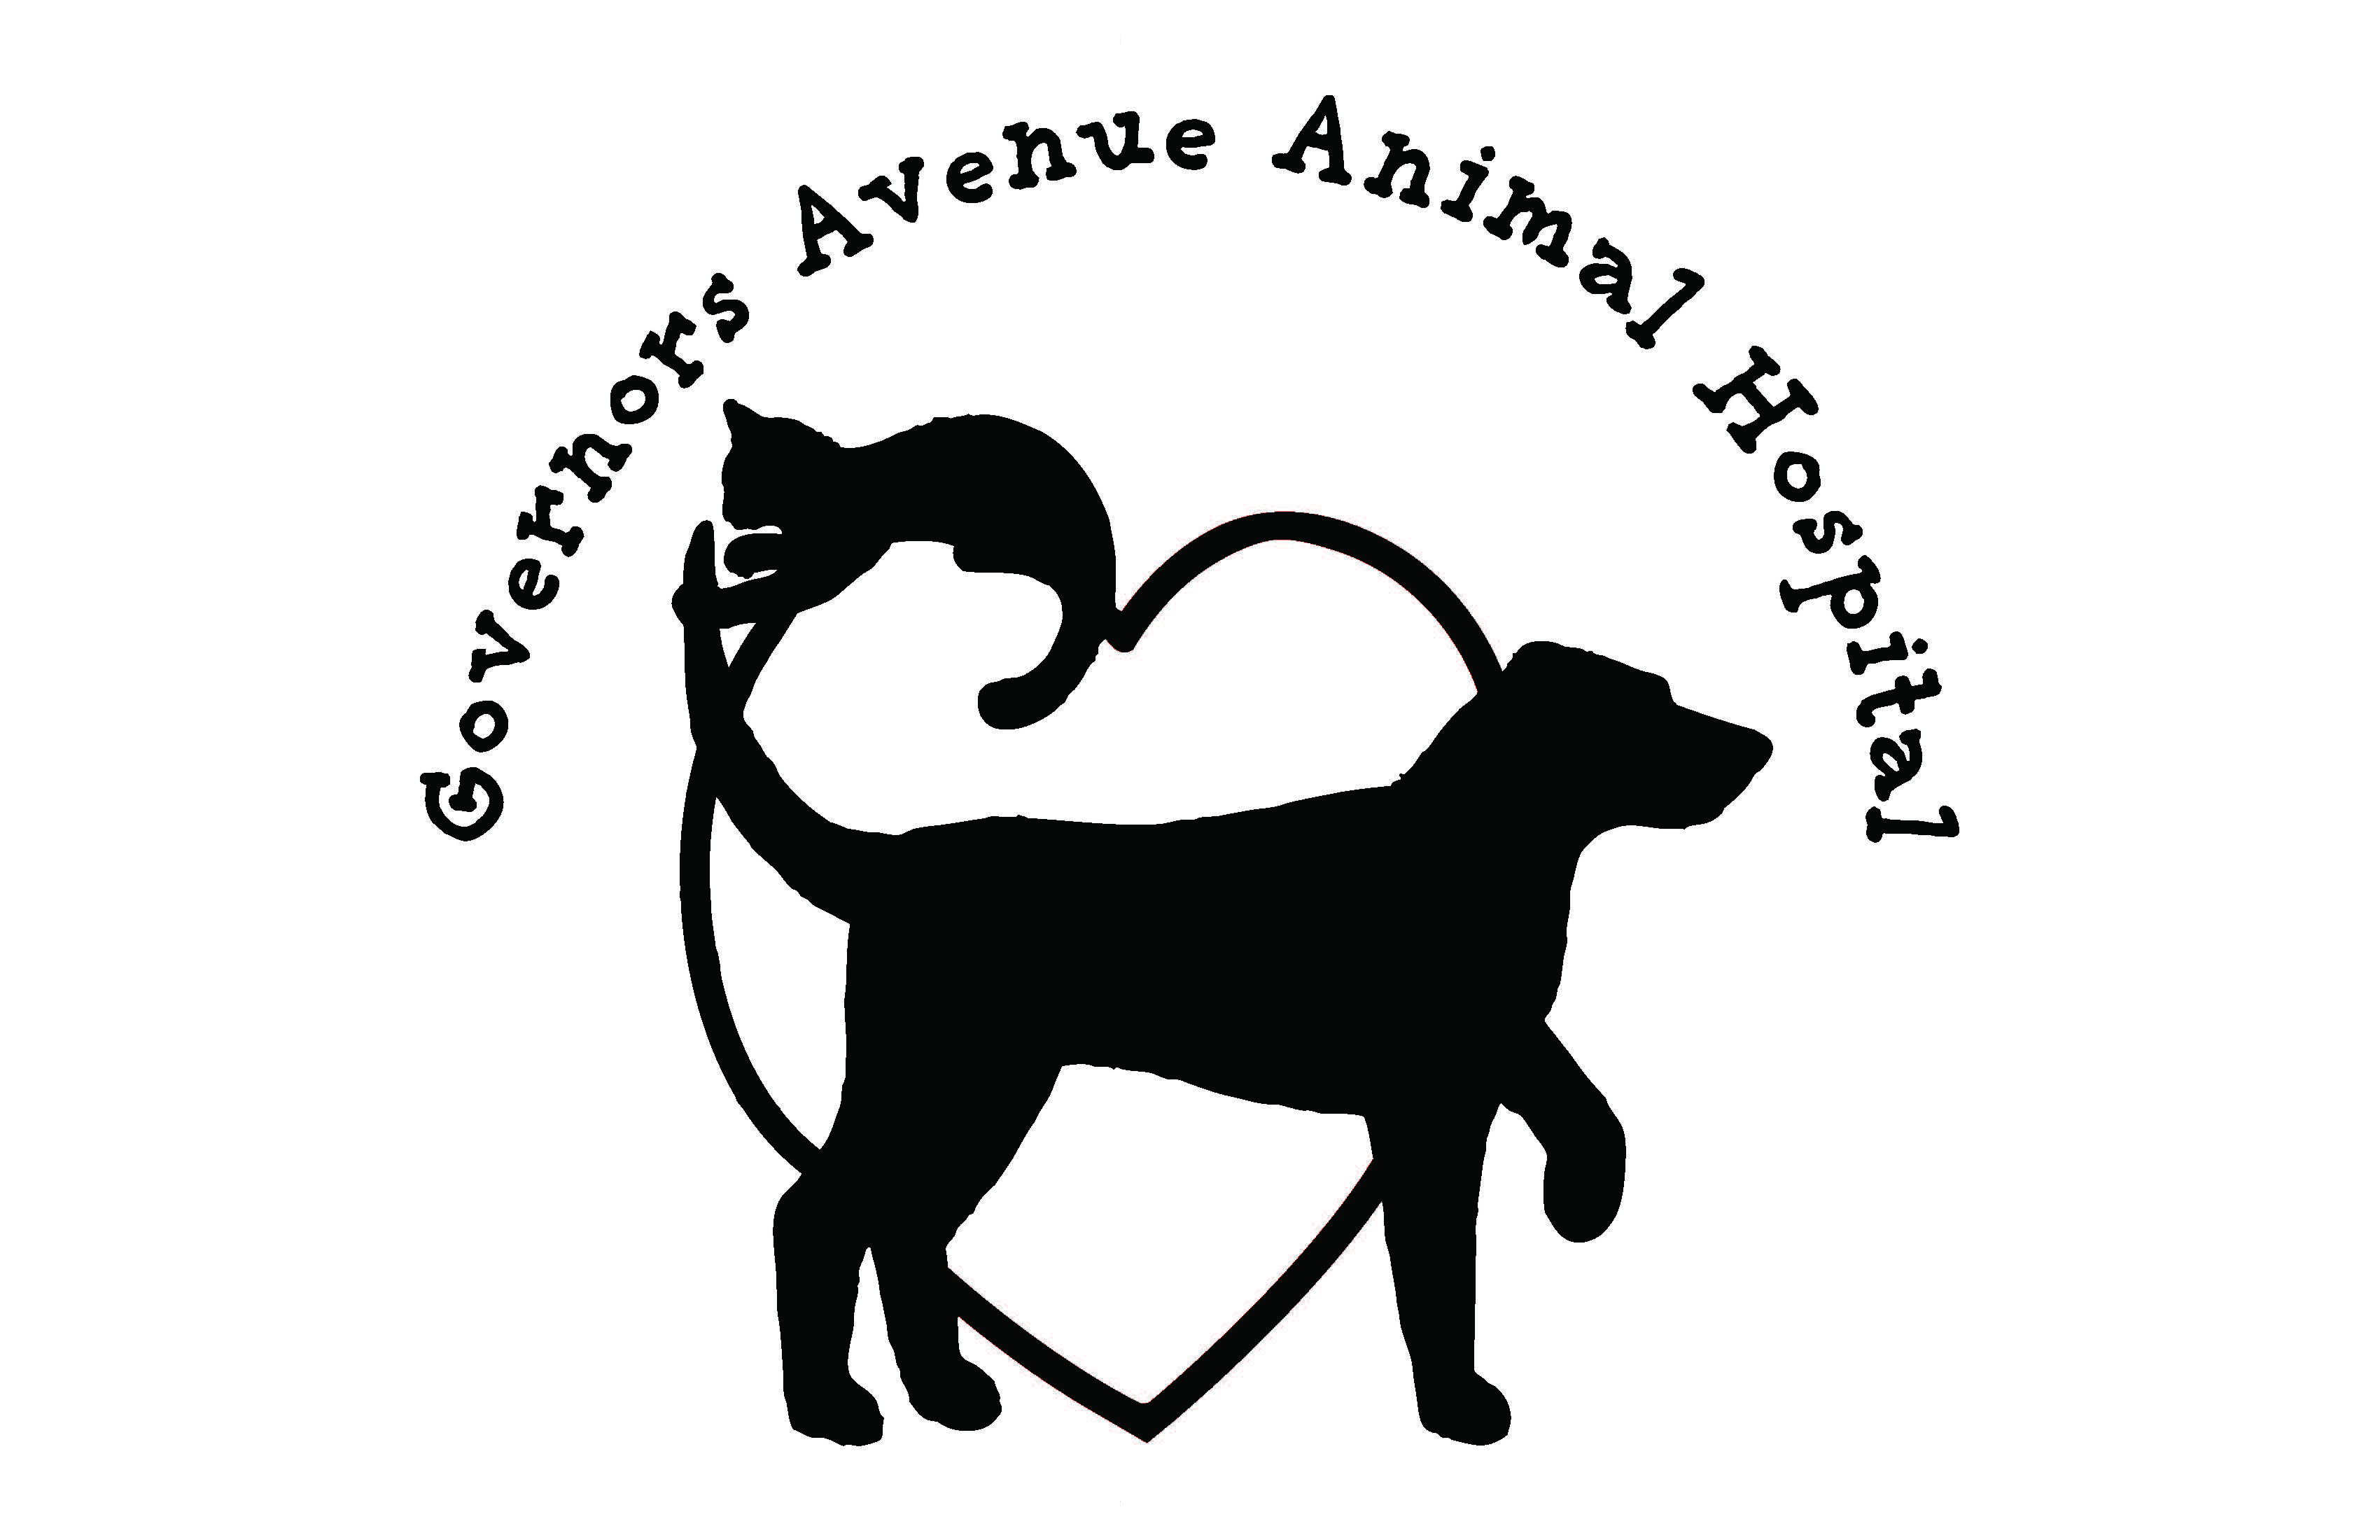 Governors Avenue Animal Hospital